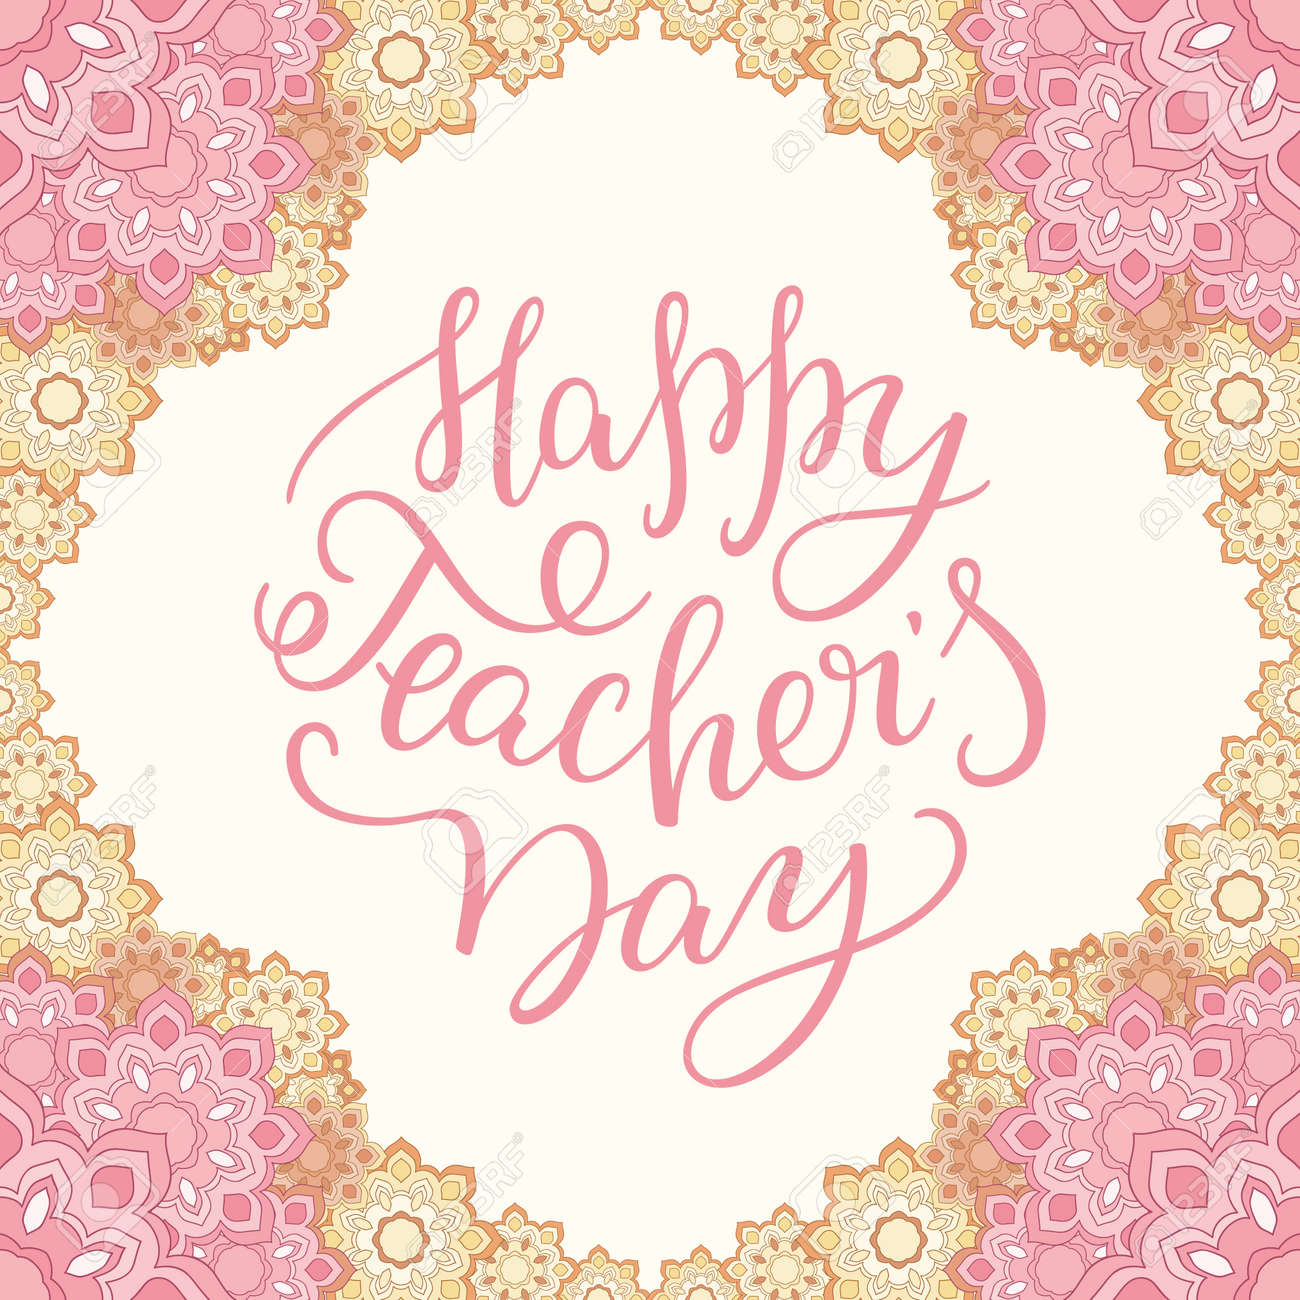 Happy teachers day hand lettering with flower frame template happy teachers day hand lettering with flower frame template for greeting card kristyandbryce Image collections